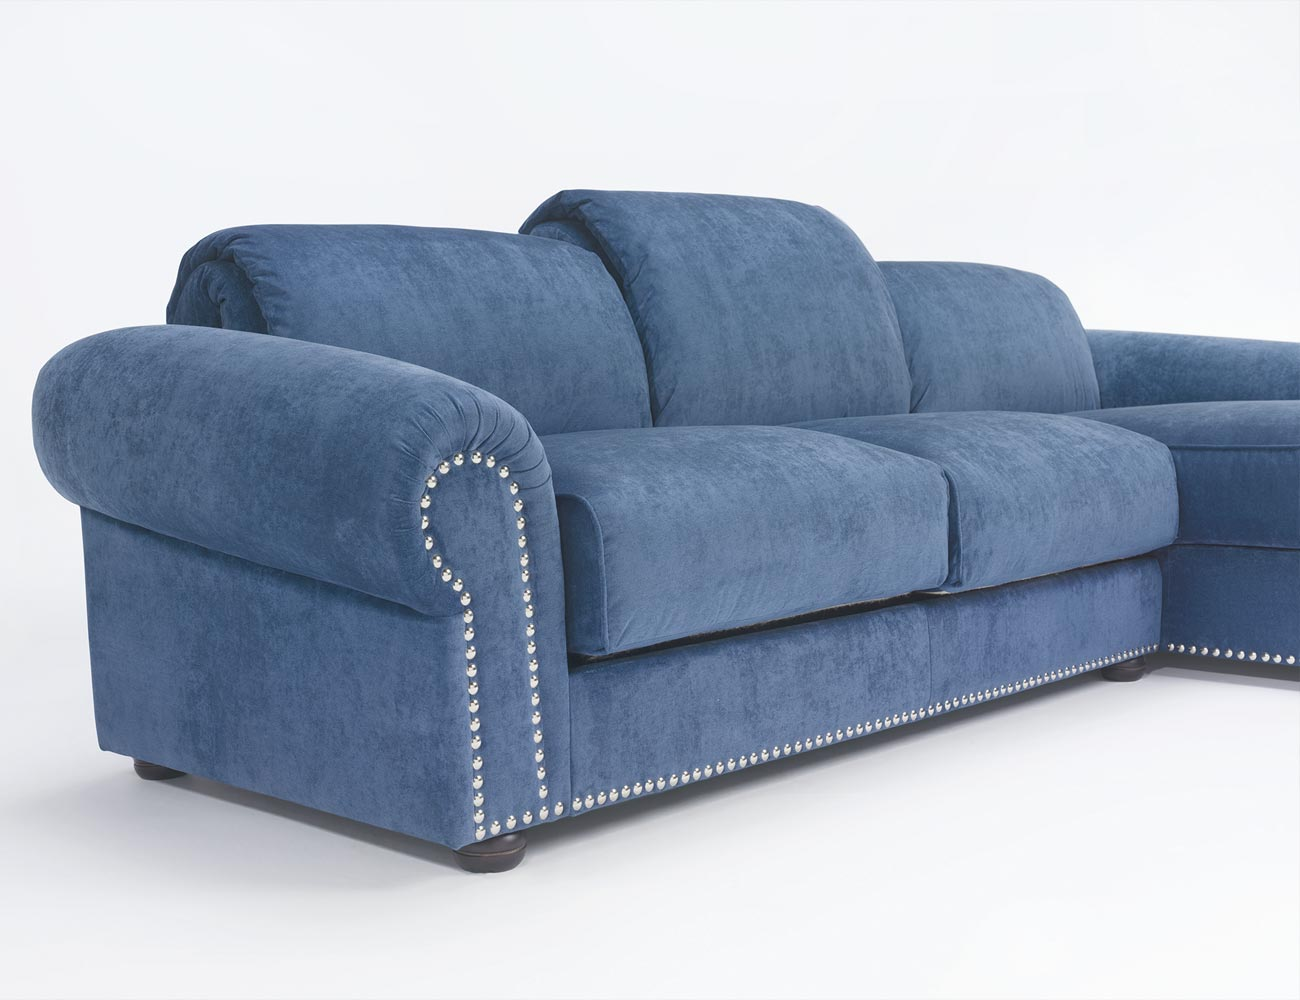 Sofa chaiselongue gran lujo decorativo azul 17